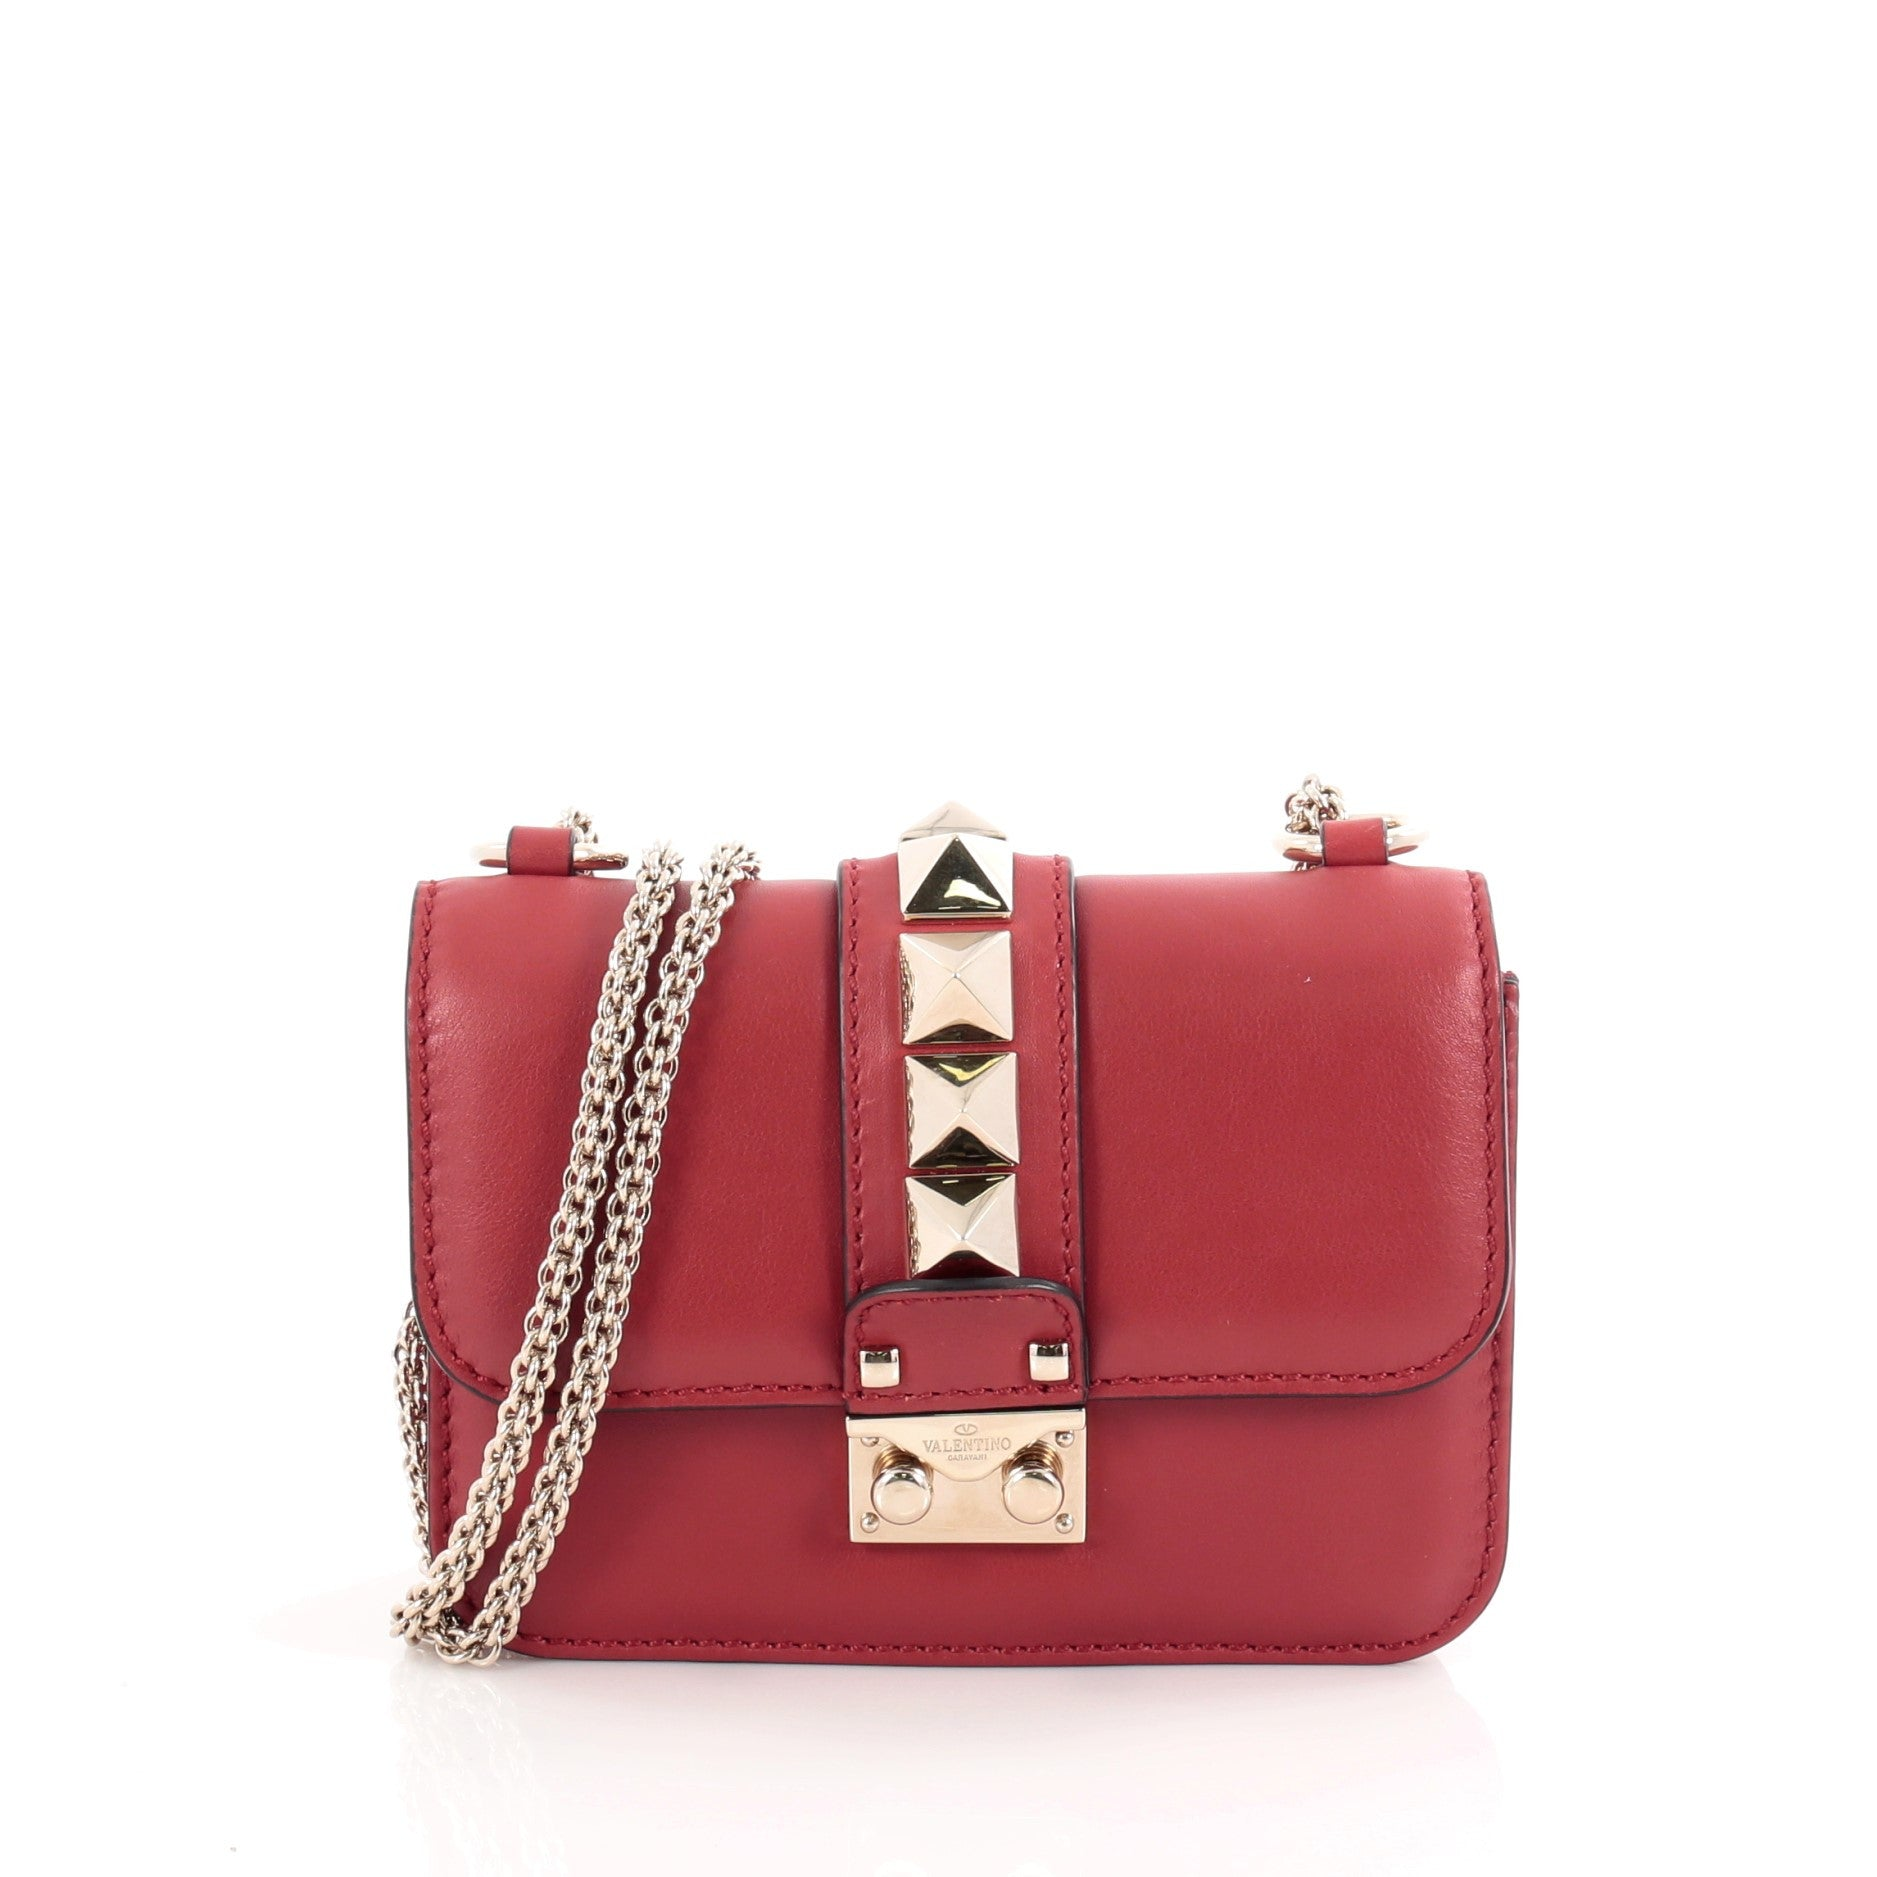 052a5a11ae9519 20881-01_Valentino_Glam_Lock_Shoulder_Bag_Leather_2D_0003.jpg?v=1499780934